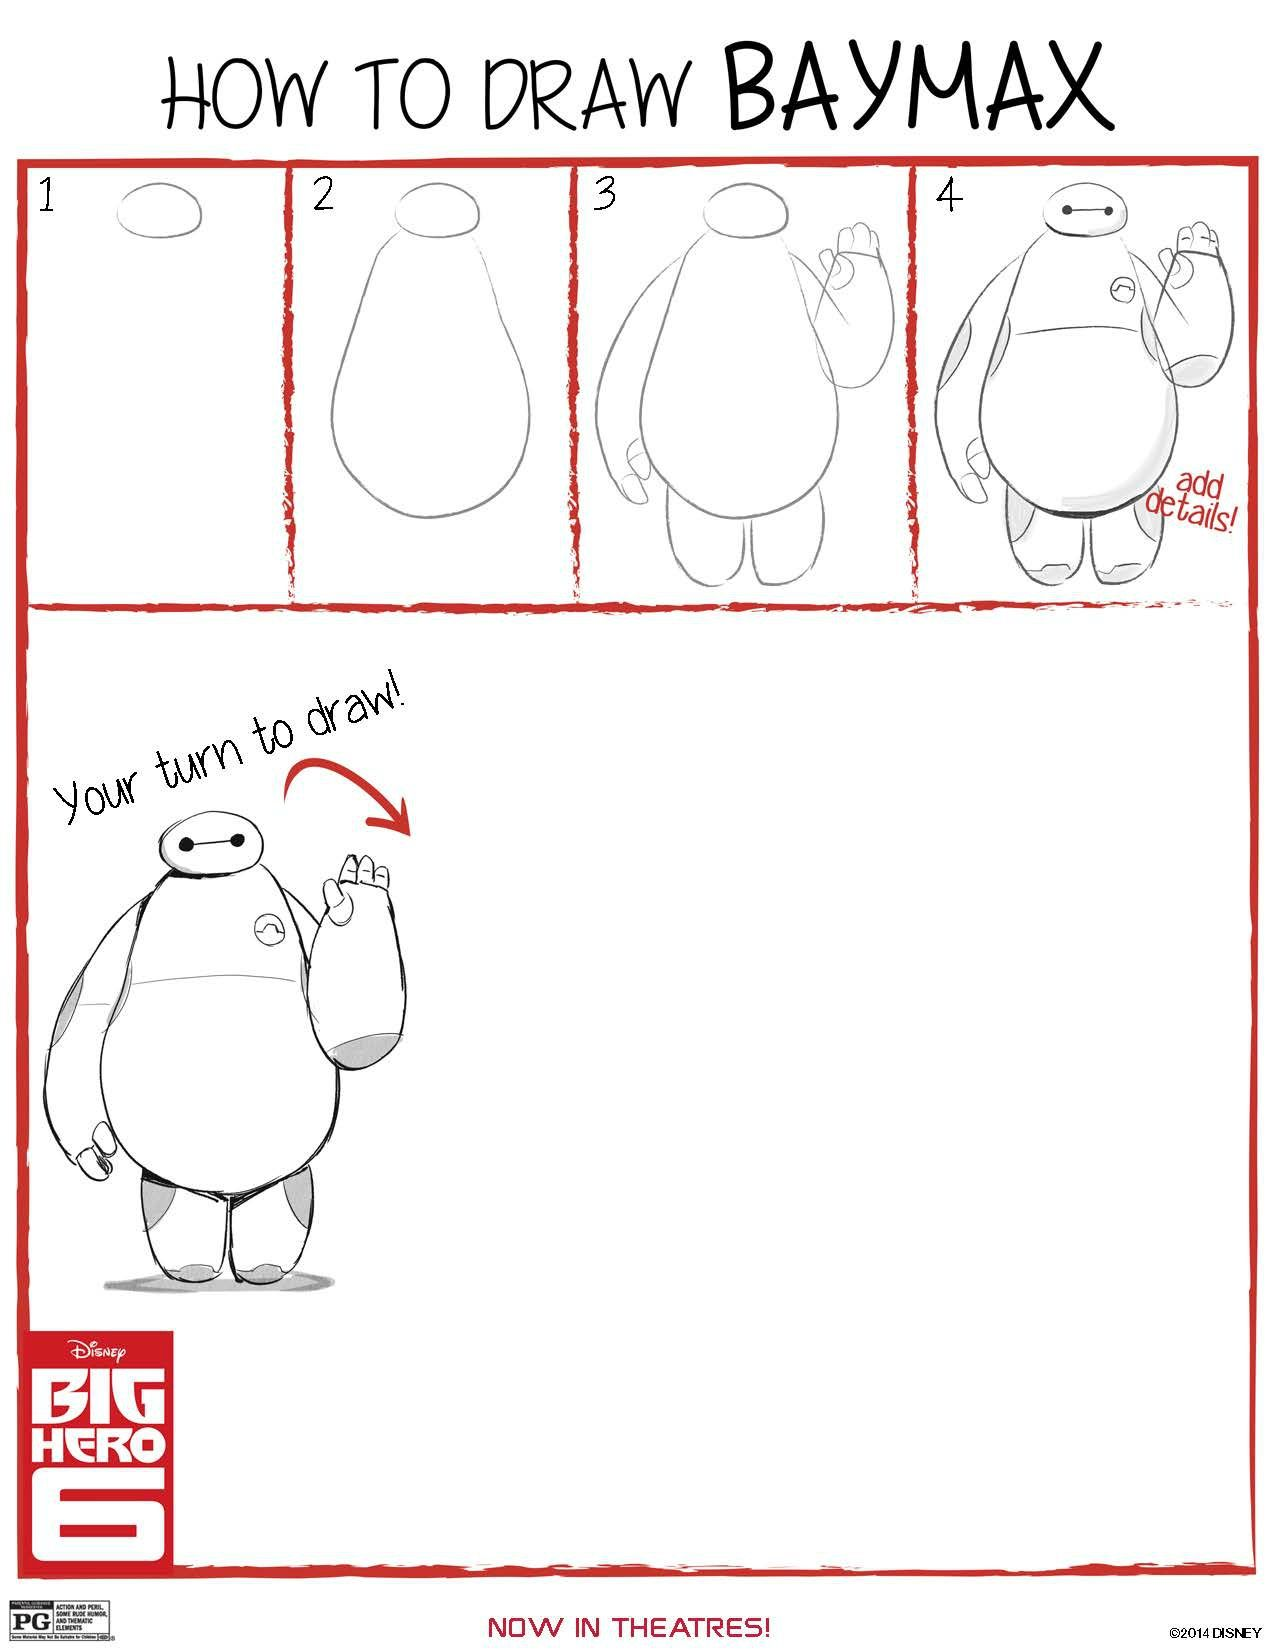 how-to-draw-baymax-large.jpg 1,275×1,650 pixels